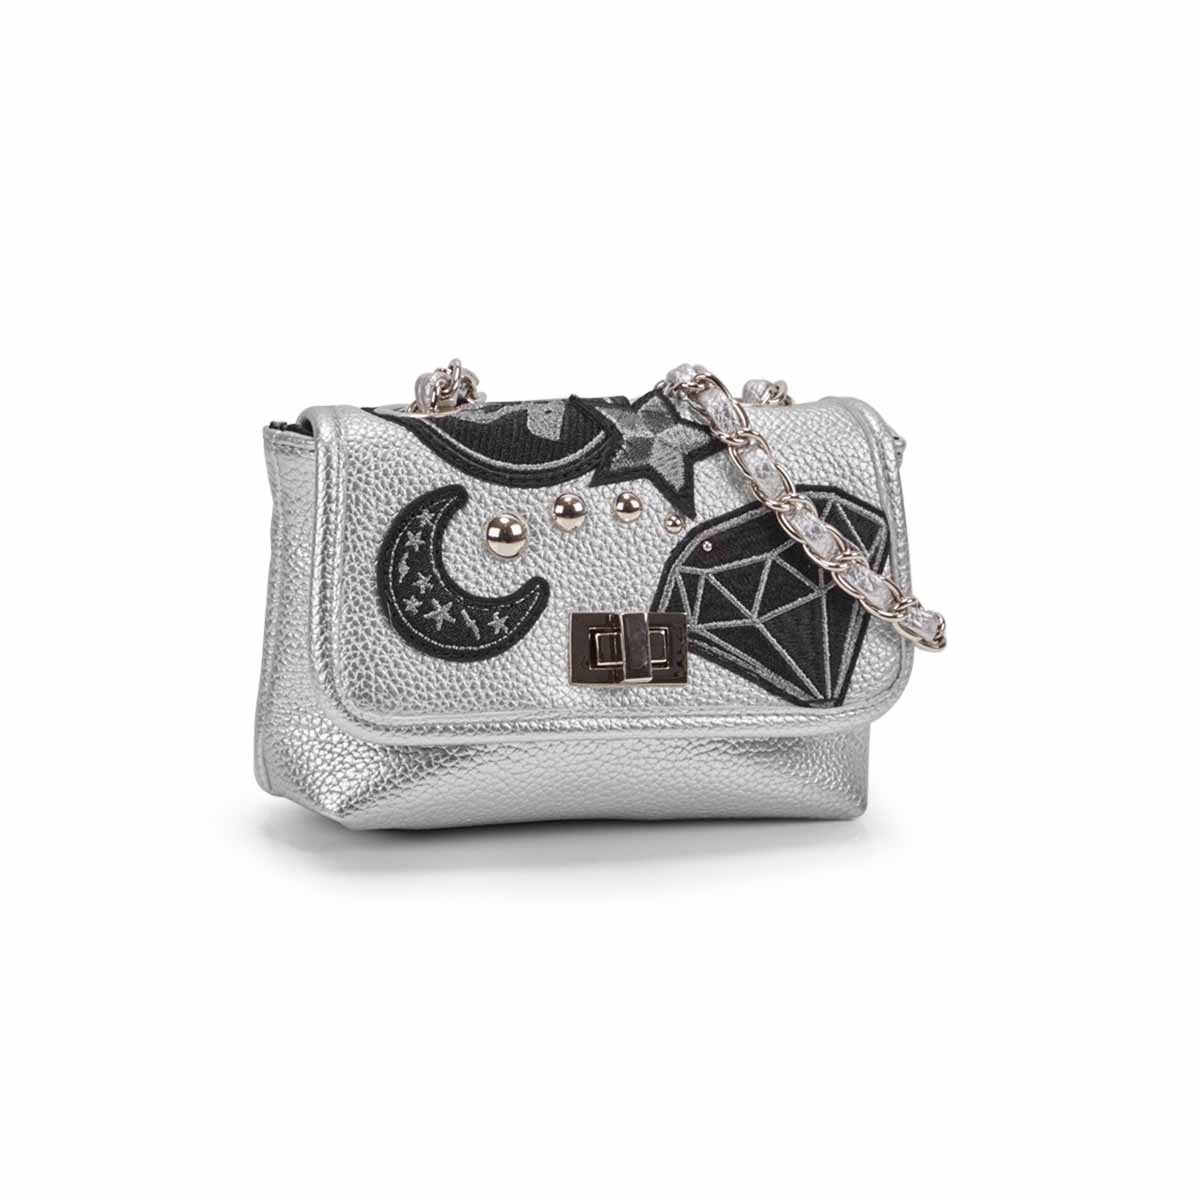 Women's BHAYLEY silver crossbody bag